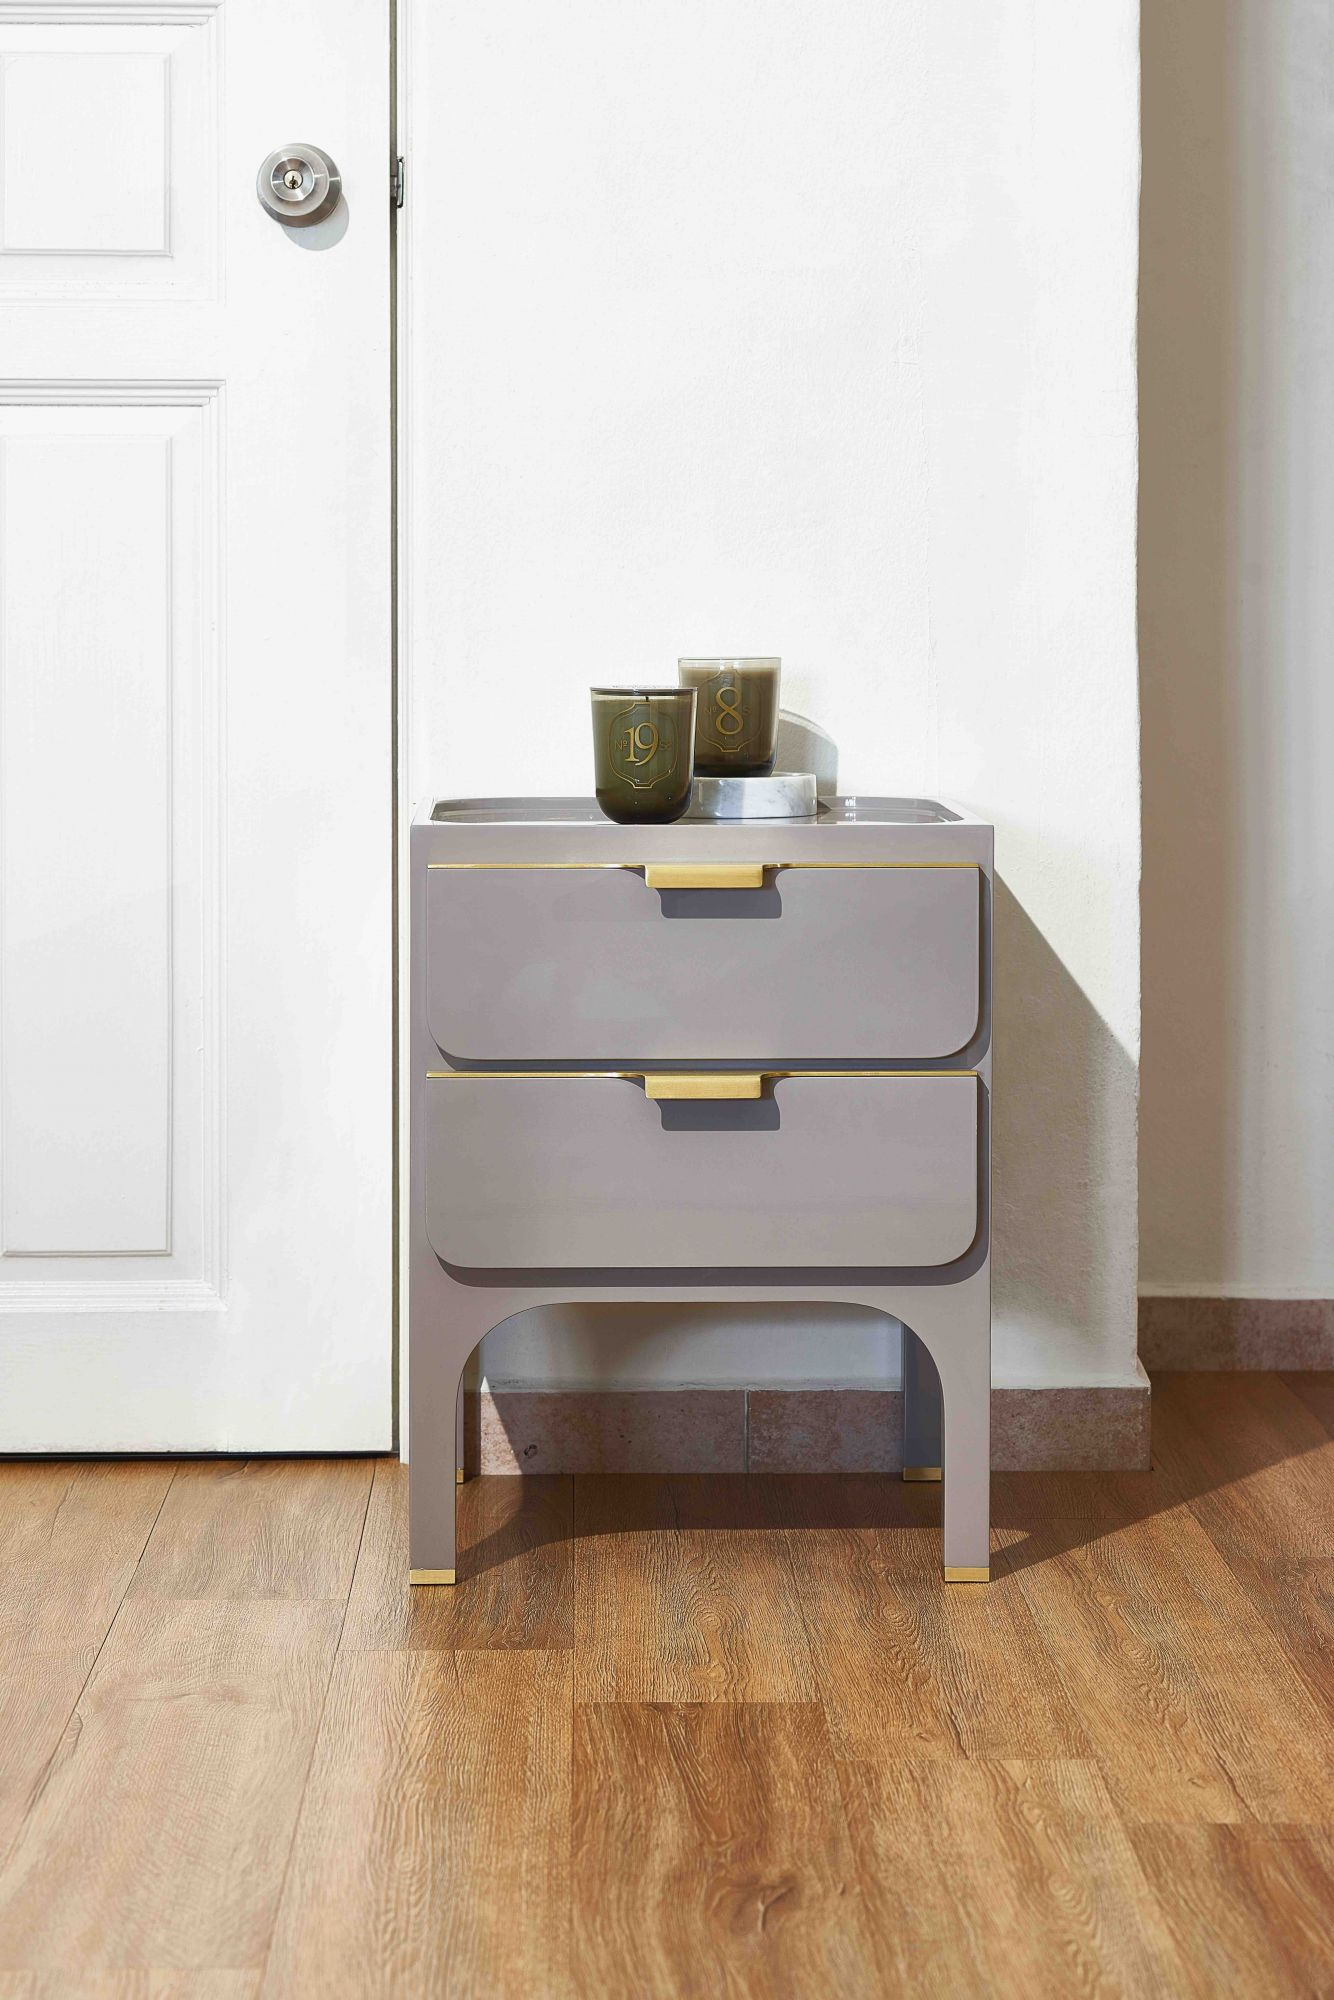 brass adornments impart a sense of discreet luxury to the Scribe side table